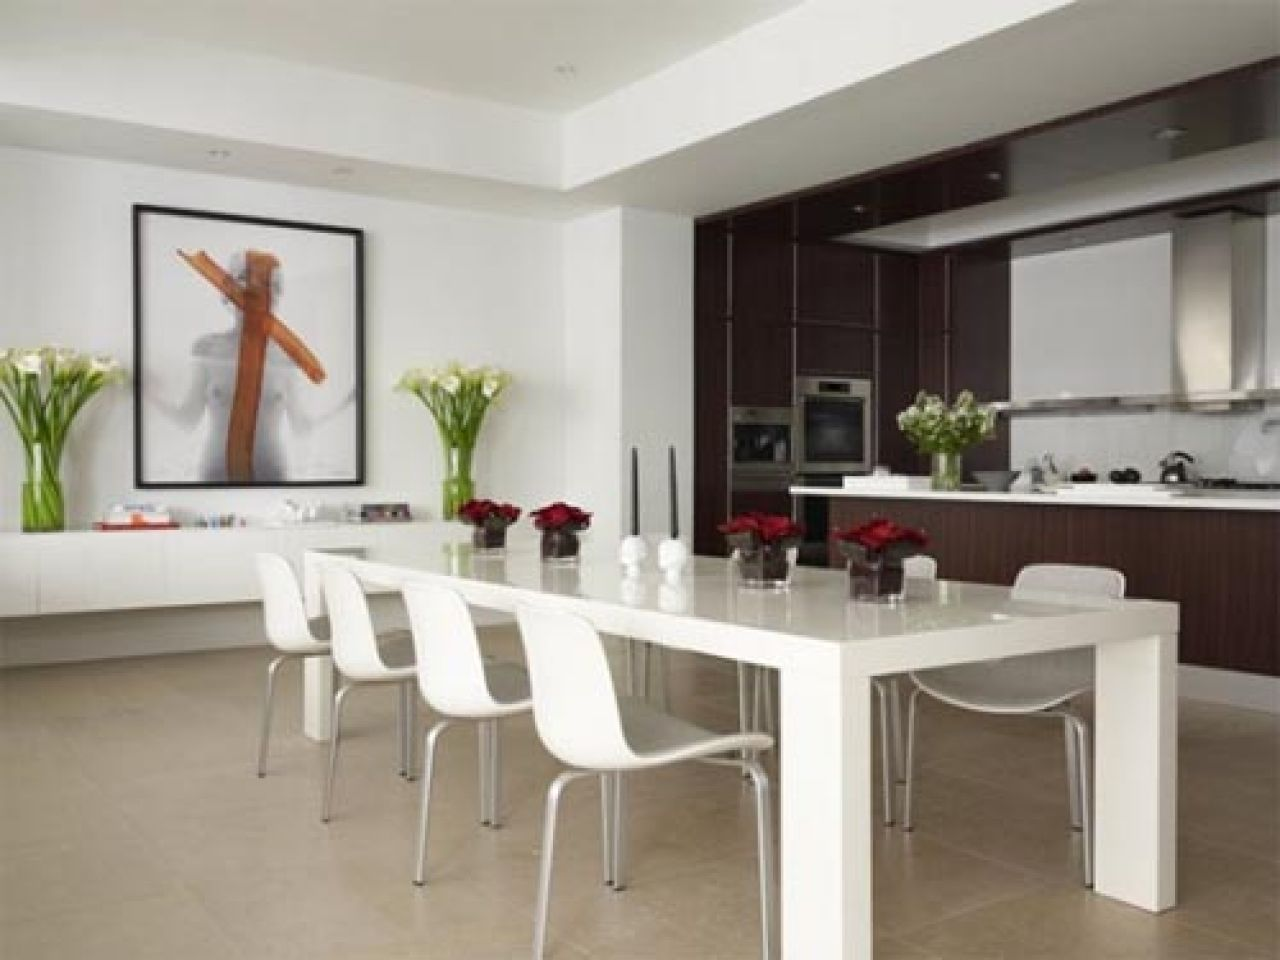 dining-room-kitchen-beautiful-interior-decorating-ideas-from-west